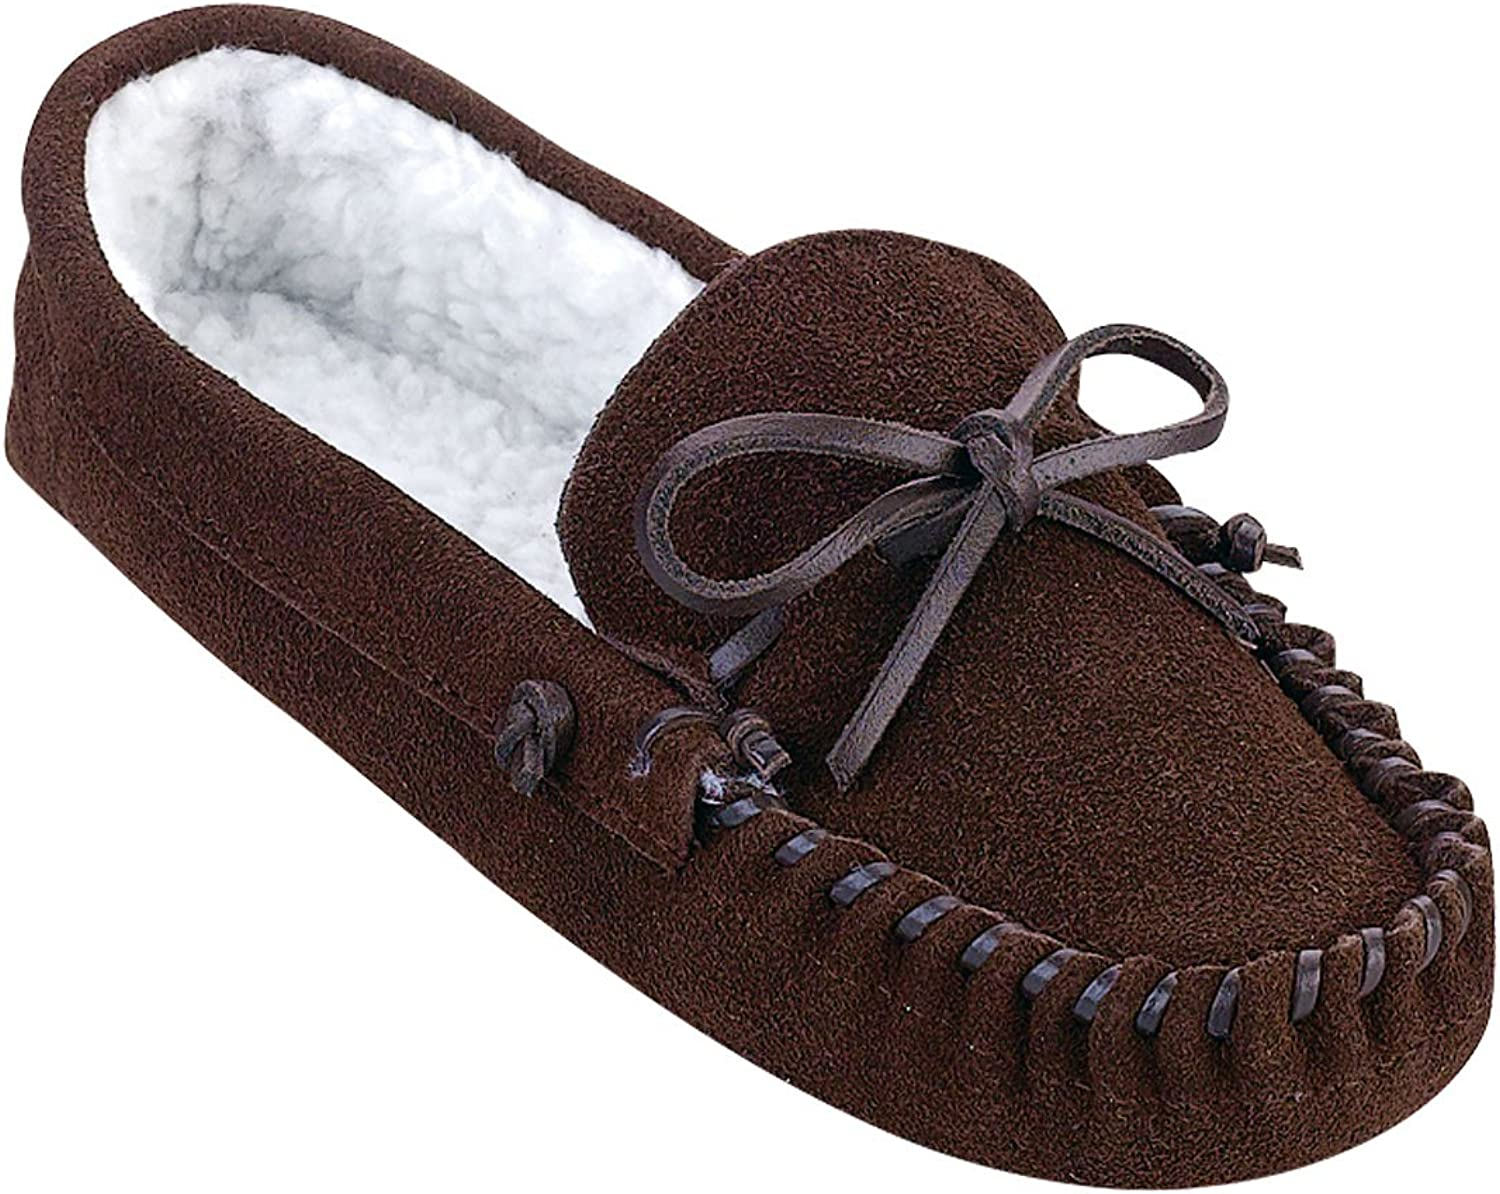 Carol Wright Gifts Ranking TOP1 Max 48% OFF Men's Leather Slippers 8 Brown Size